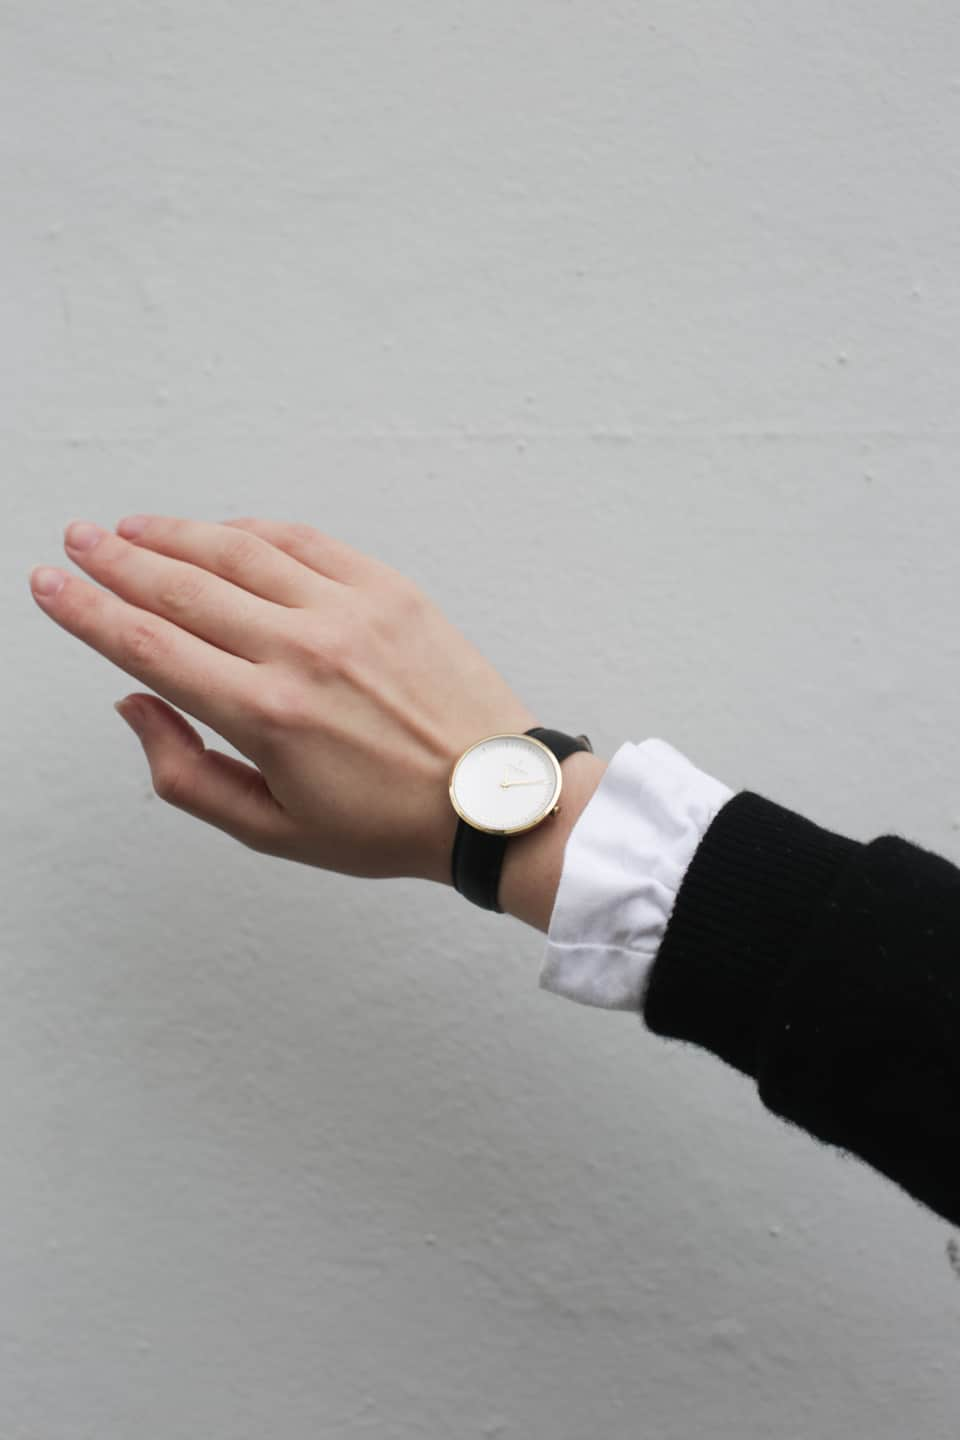 Hand with Nordgreen watch on wrist